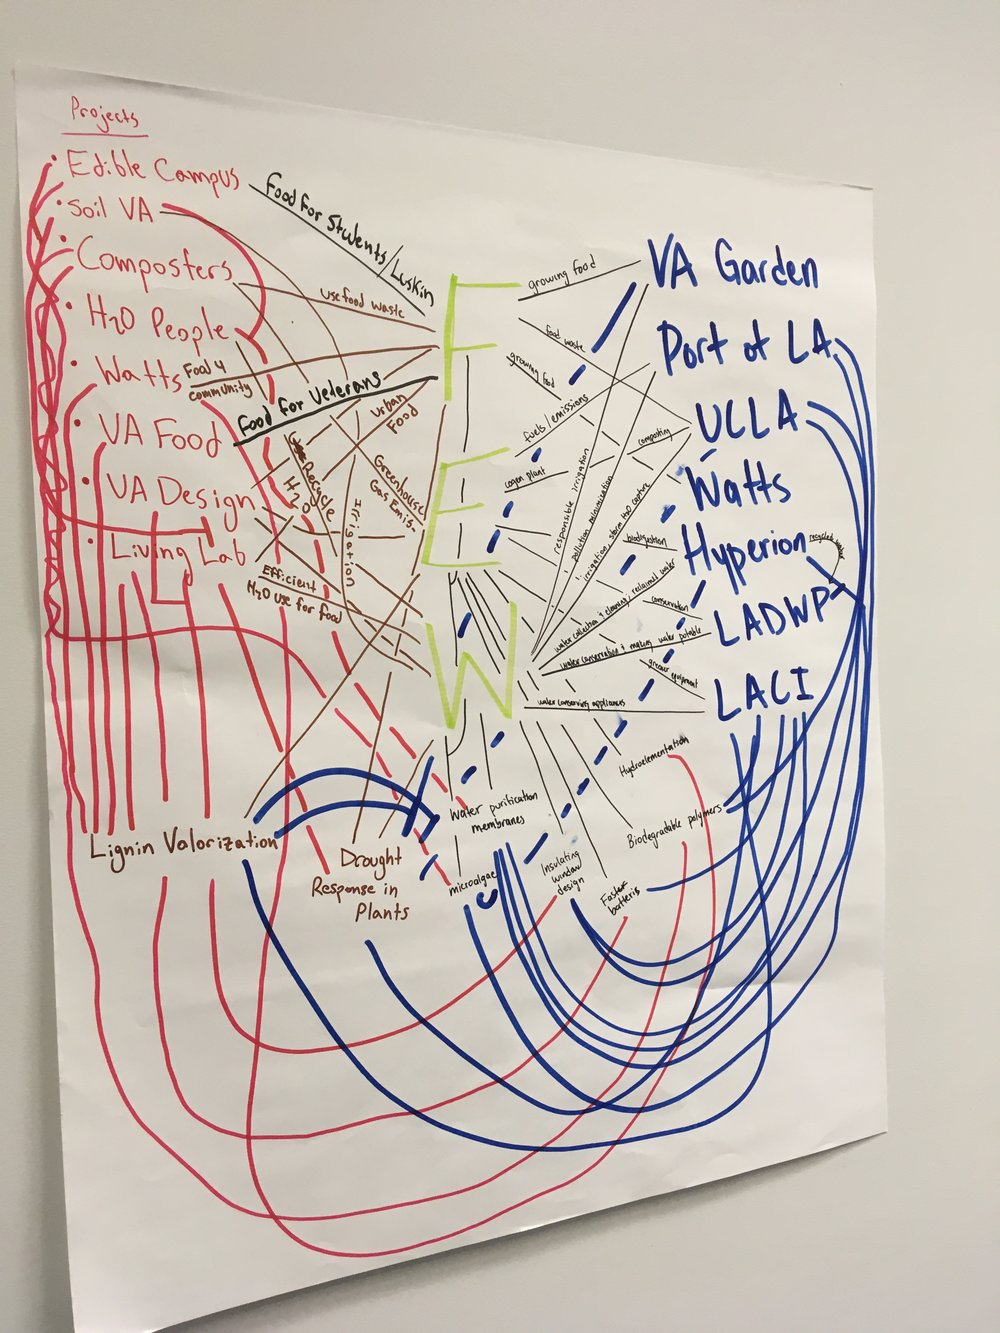 December 7, 2018: FEWS Field Lab Concept Map